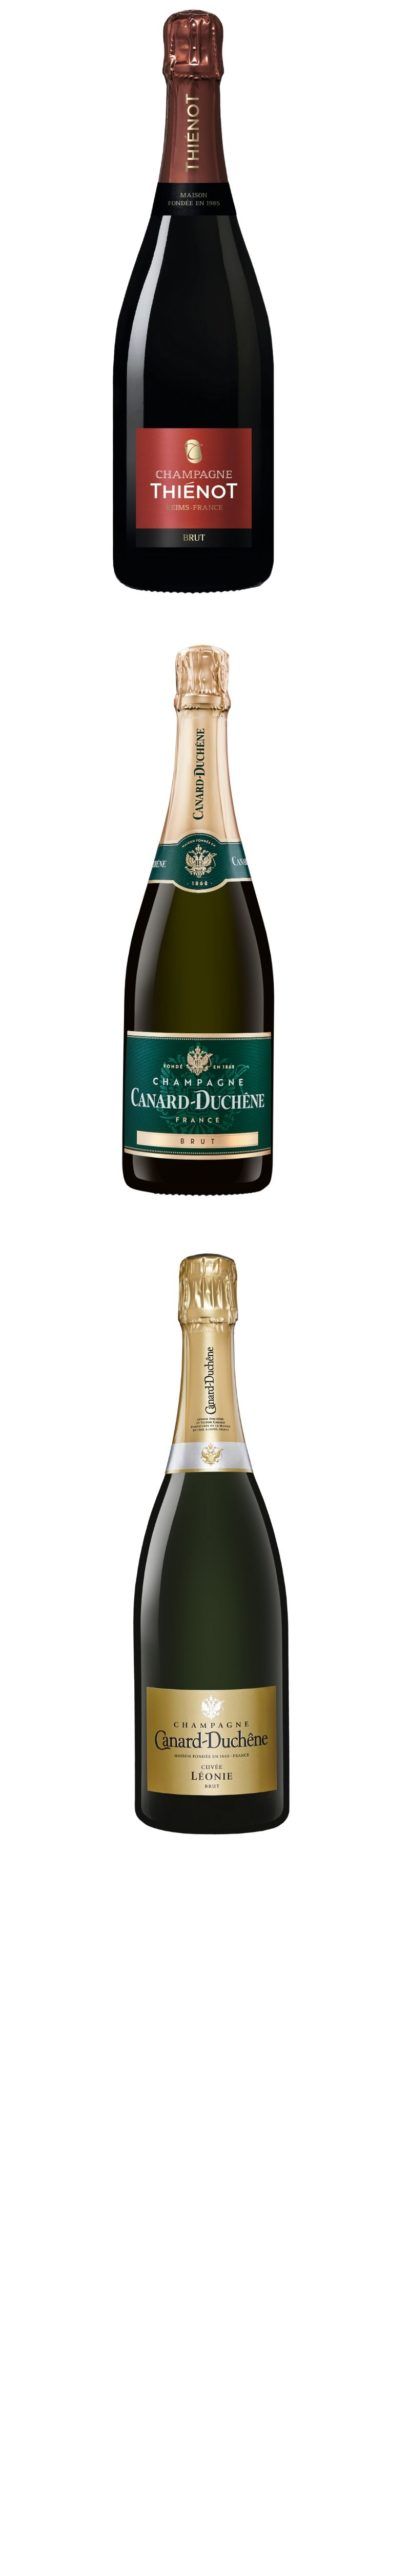 Animation bouteilles verticales Champagnes Export (2)